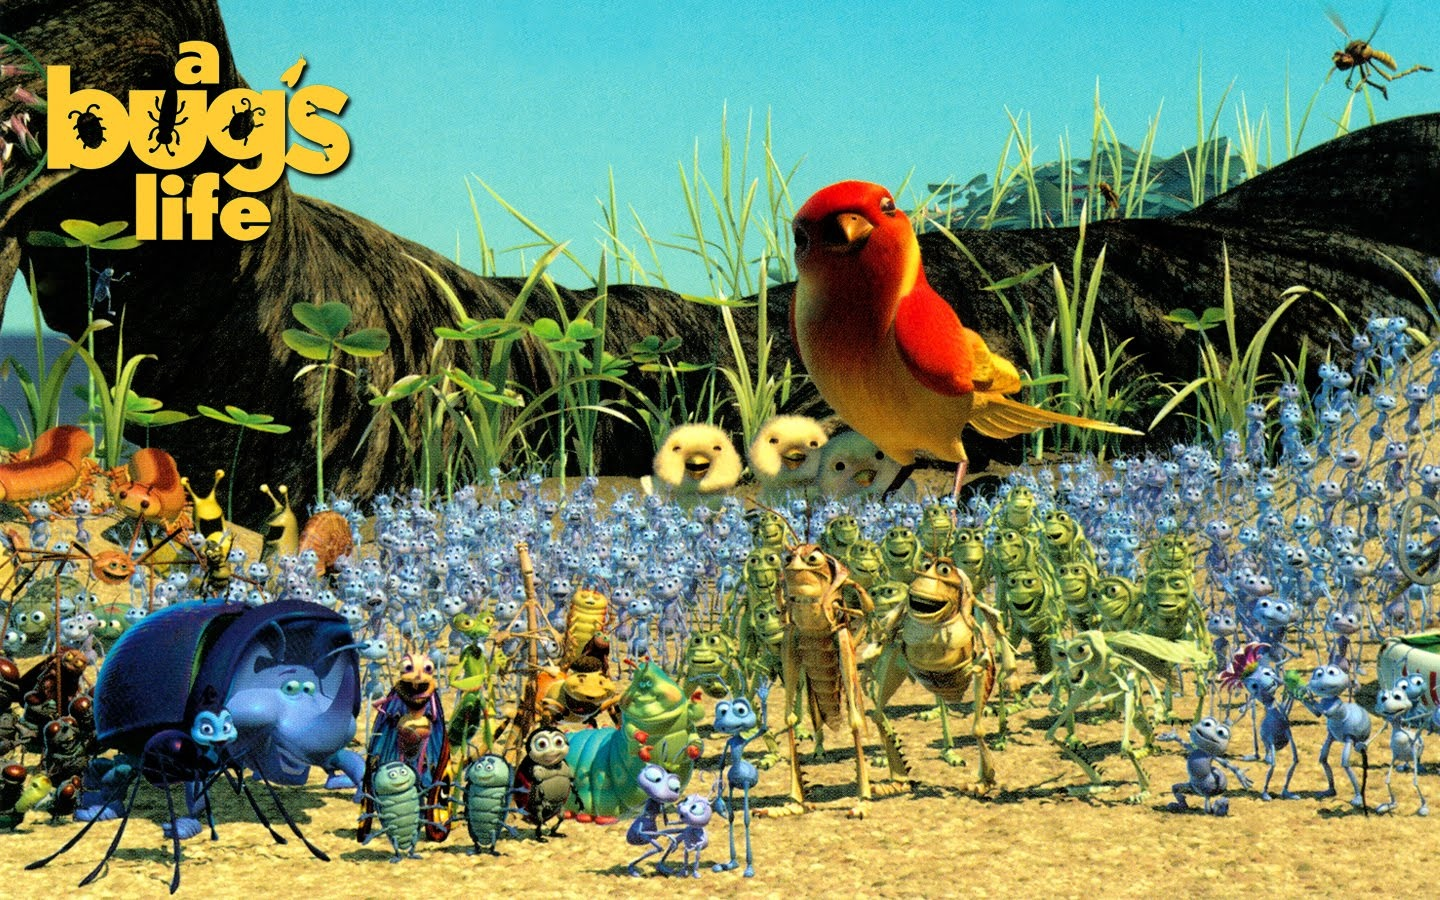 It's just a graphic of Persnickety A Bug's Life Poster